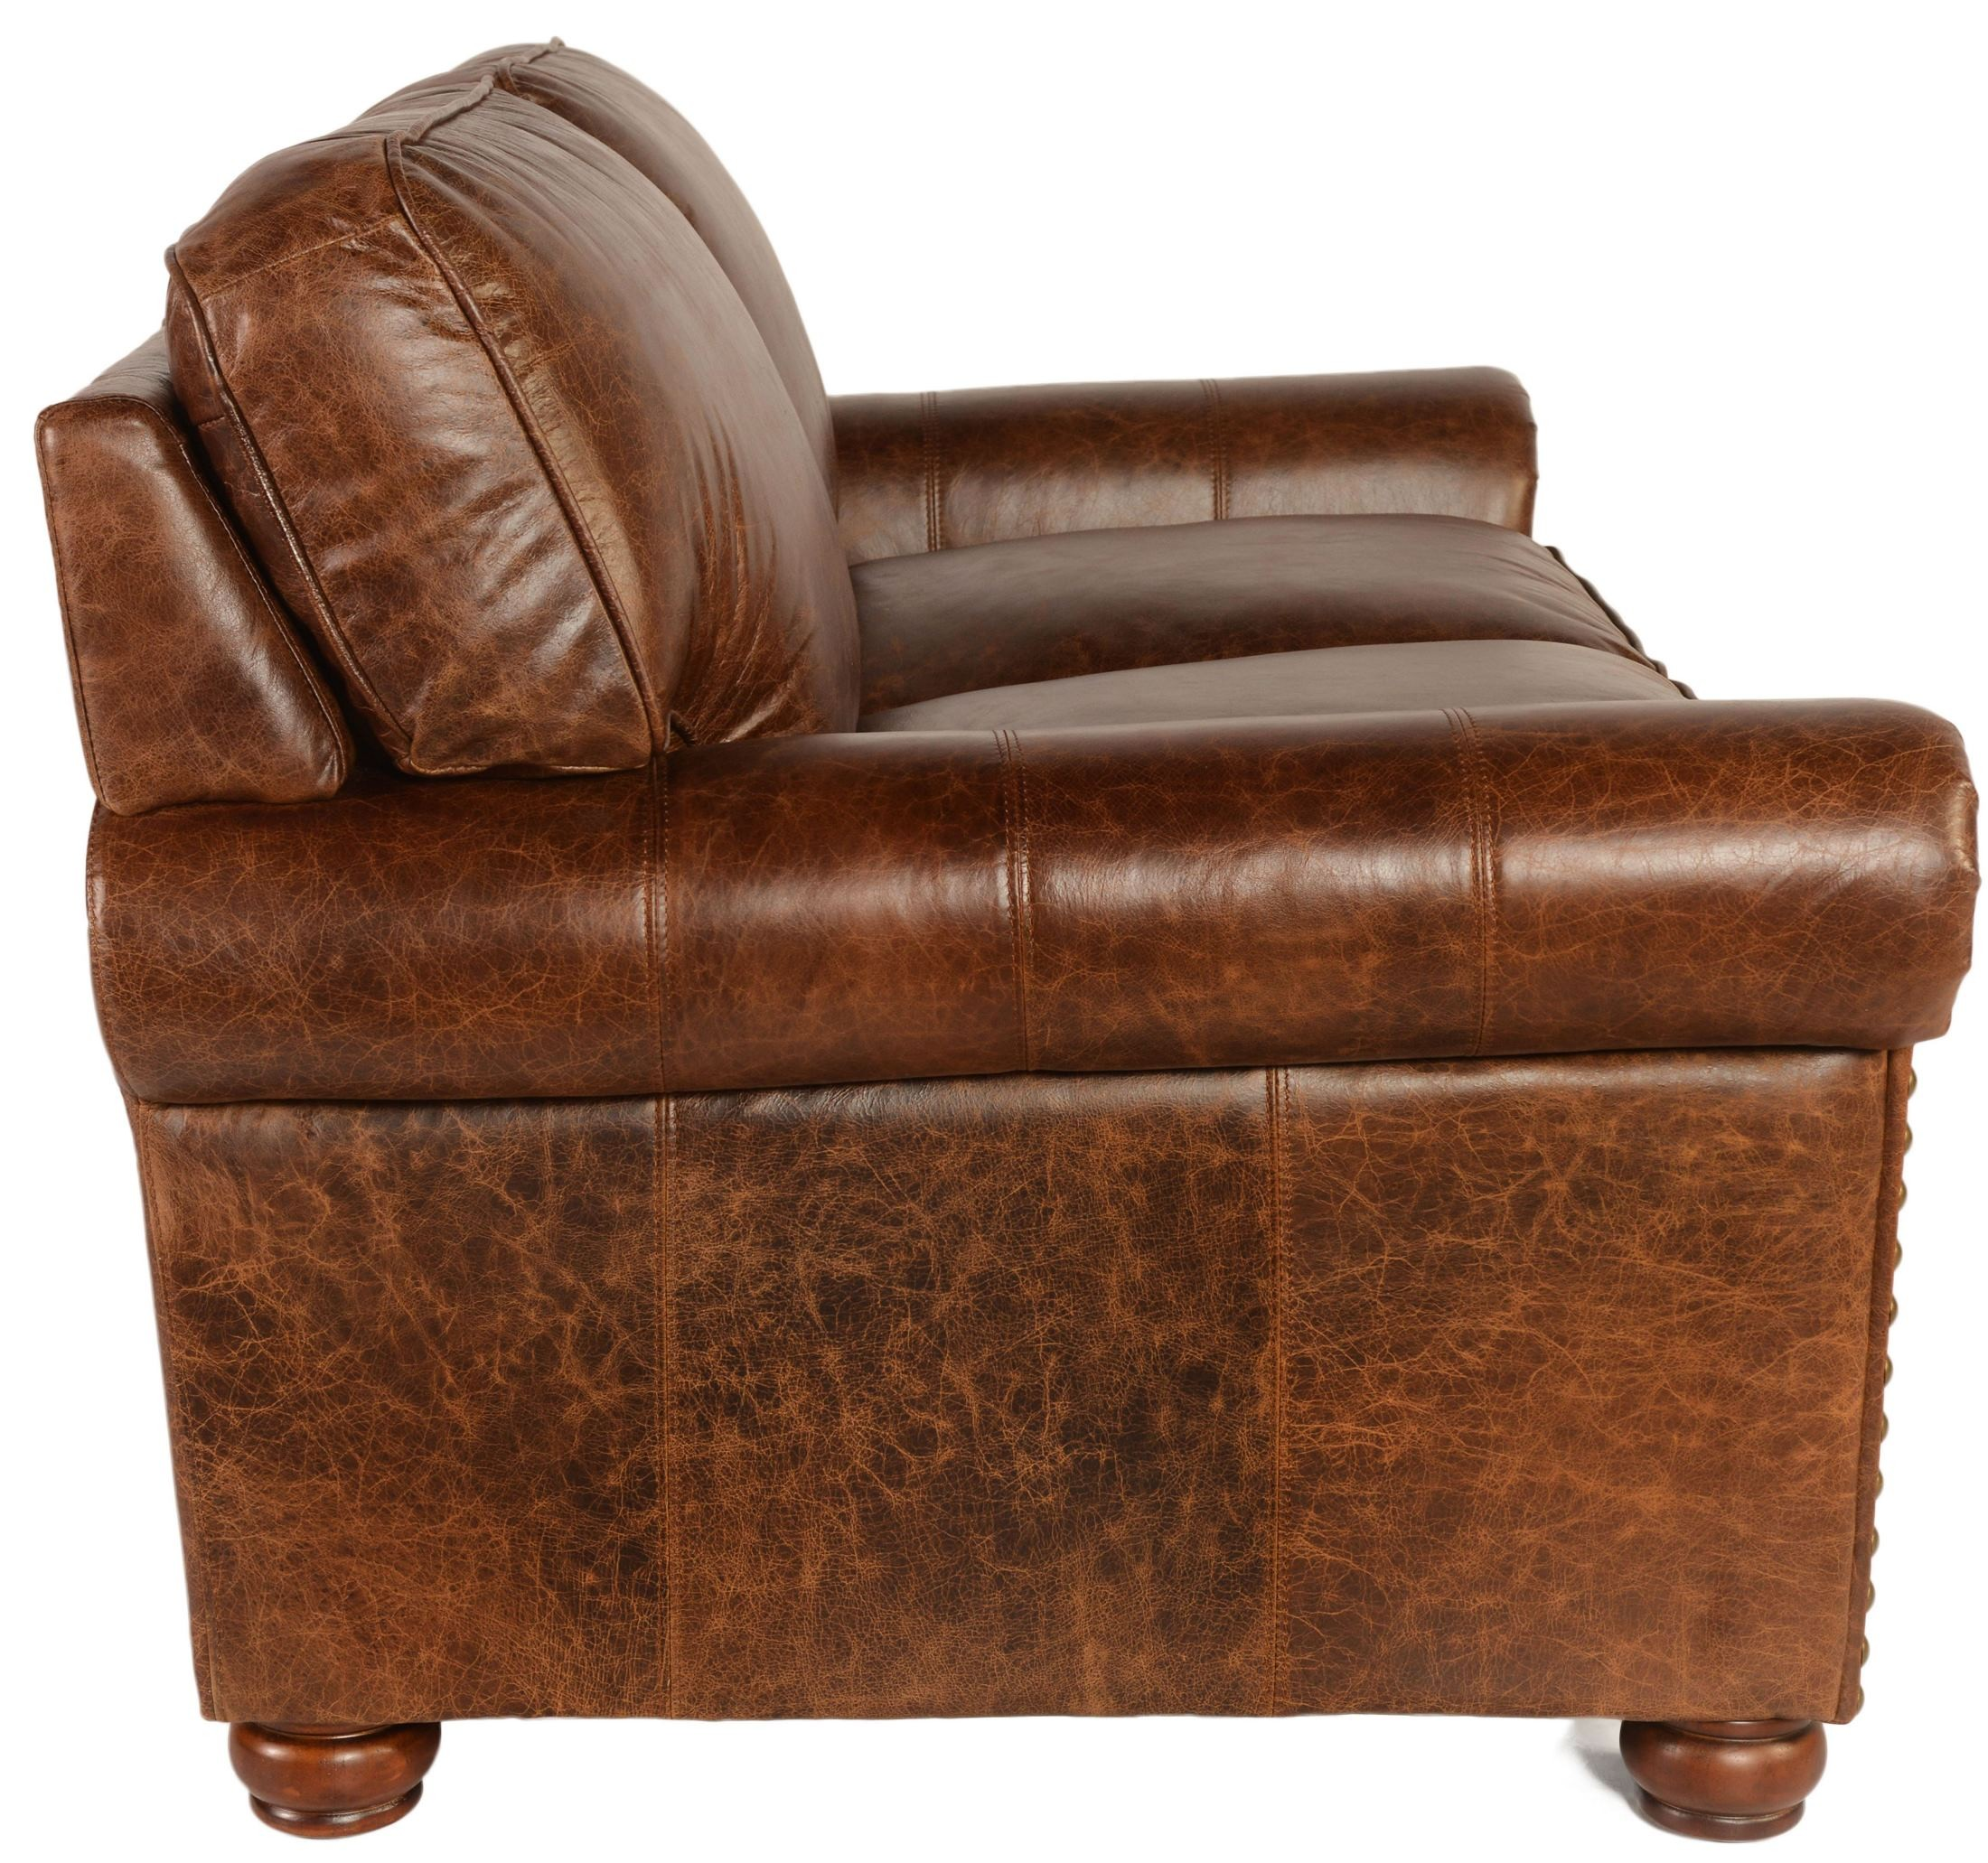 next brompton leather sofa top grain conditioner genesis coco from lazzaro wh 1001n